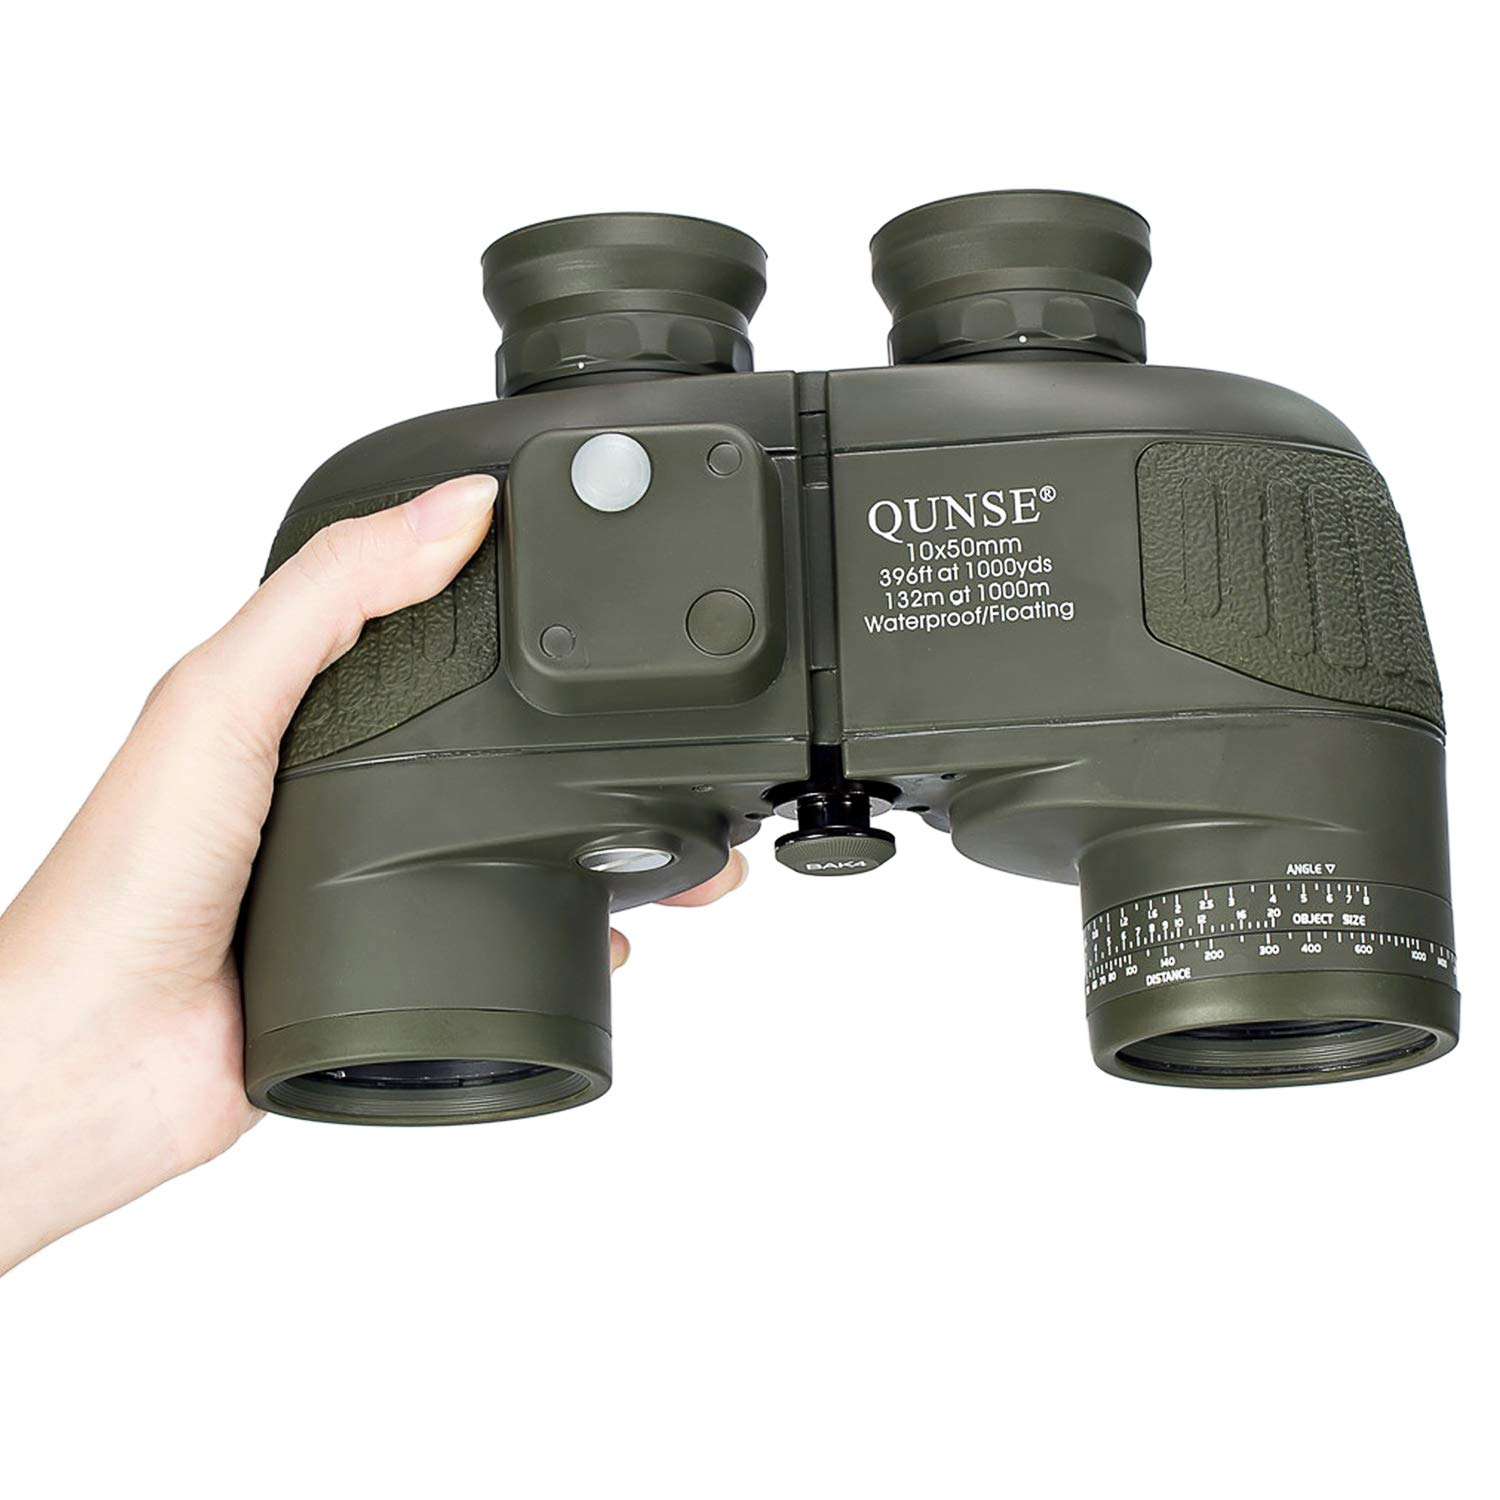 QUNSE 10x50 HD Binoculars with Compass and Rangefinder Large Object FMC Lens Clear View BAK4, with Shoulder Harness Strap and Binoculars Bag (Dark Green)